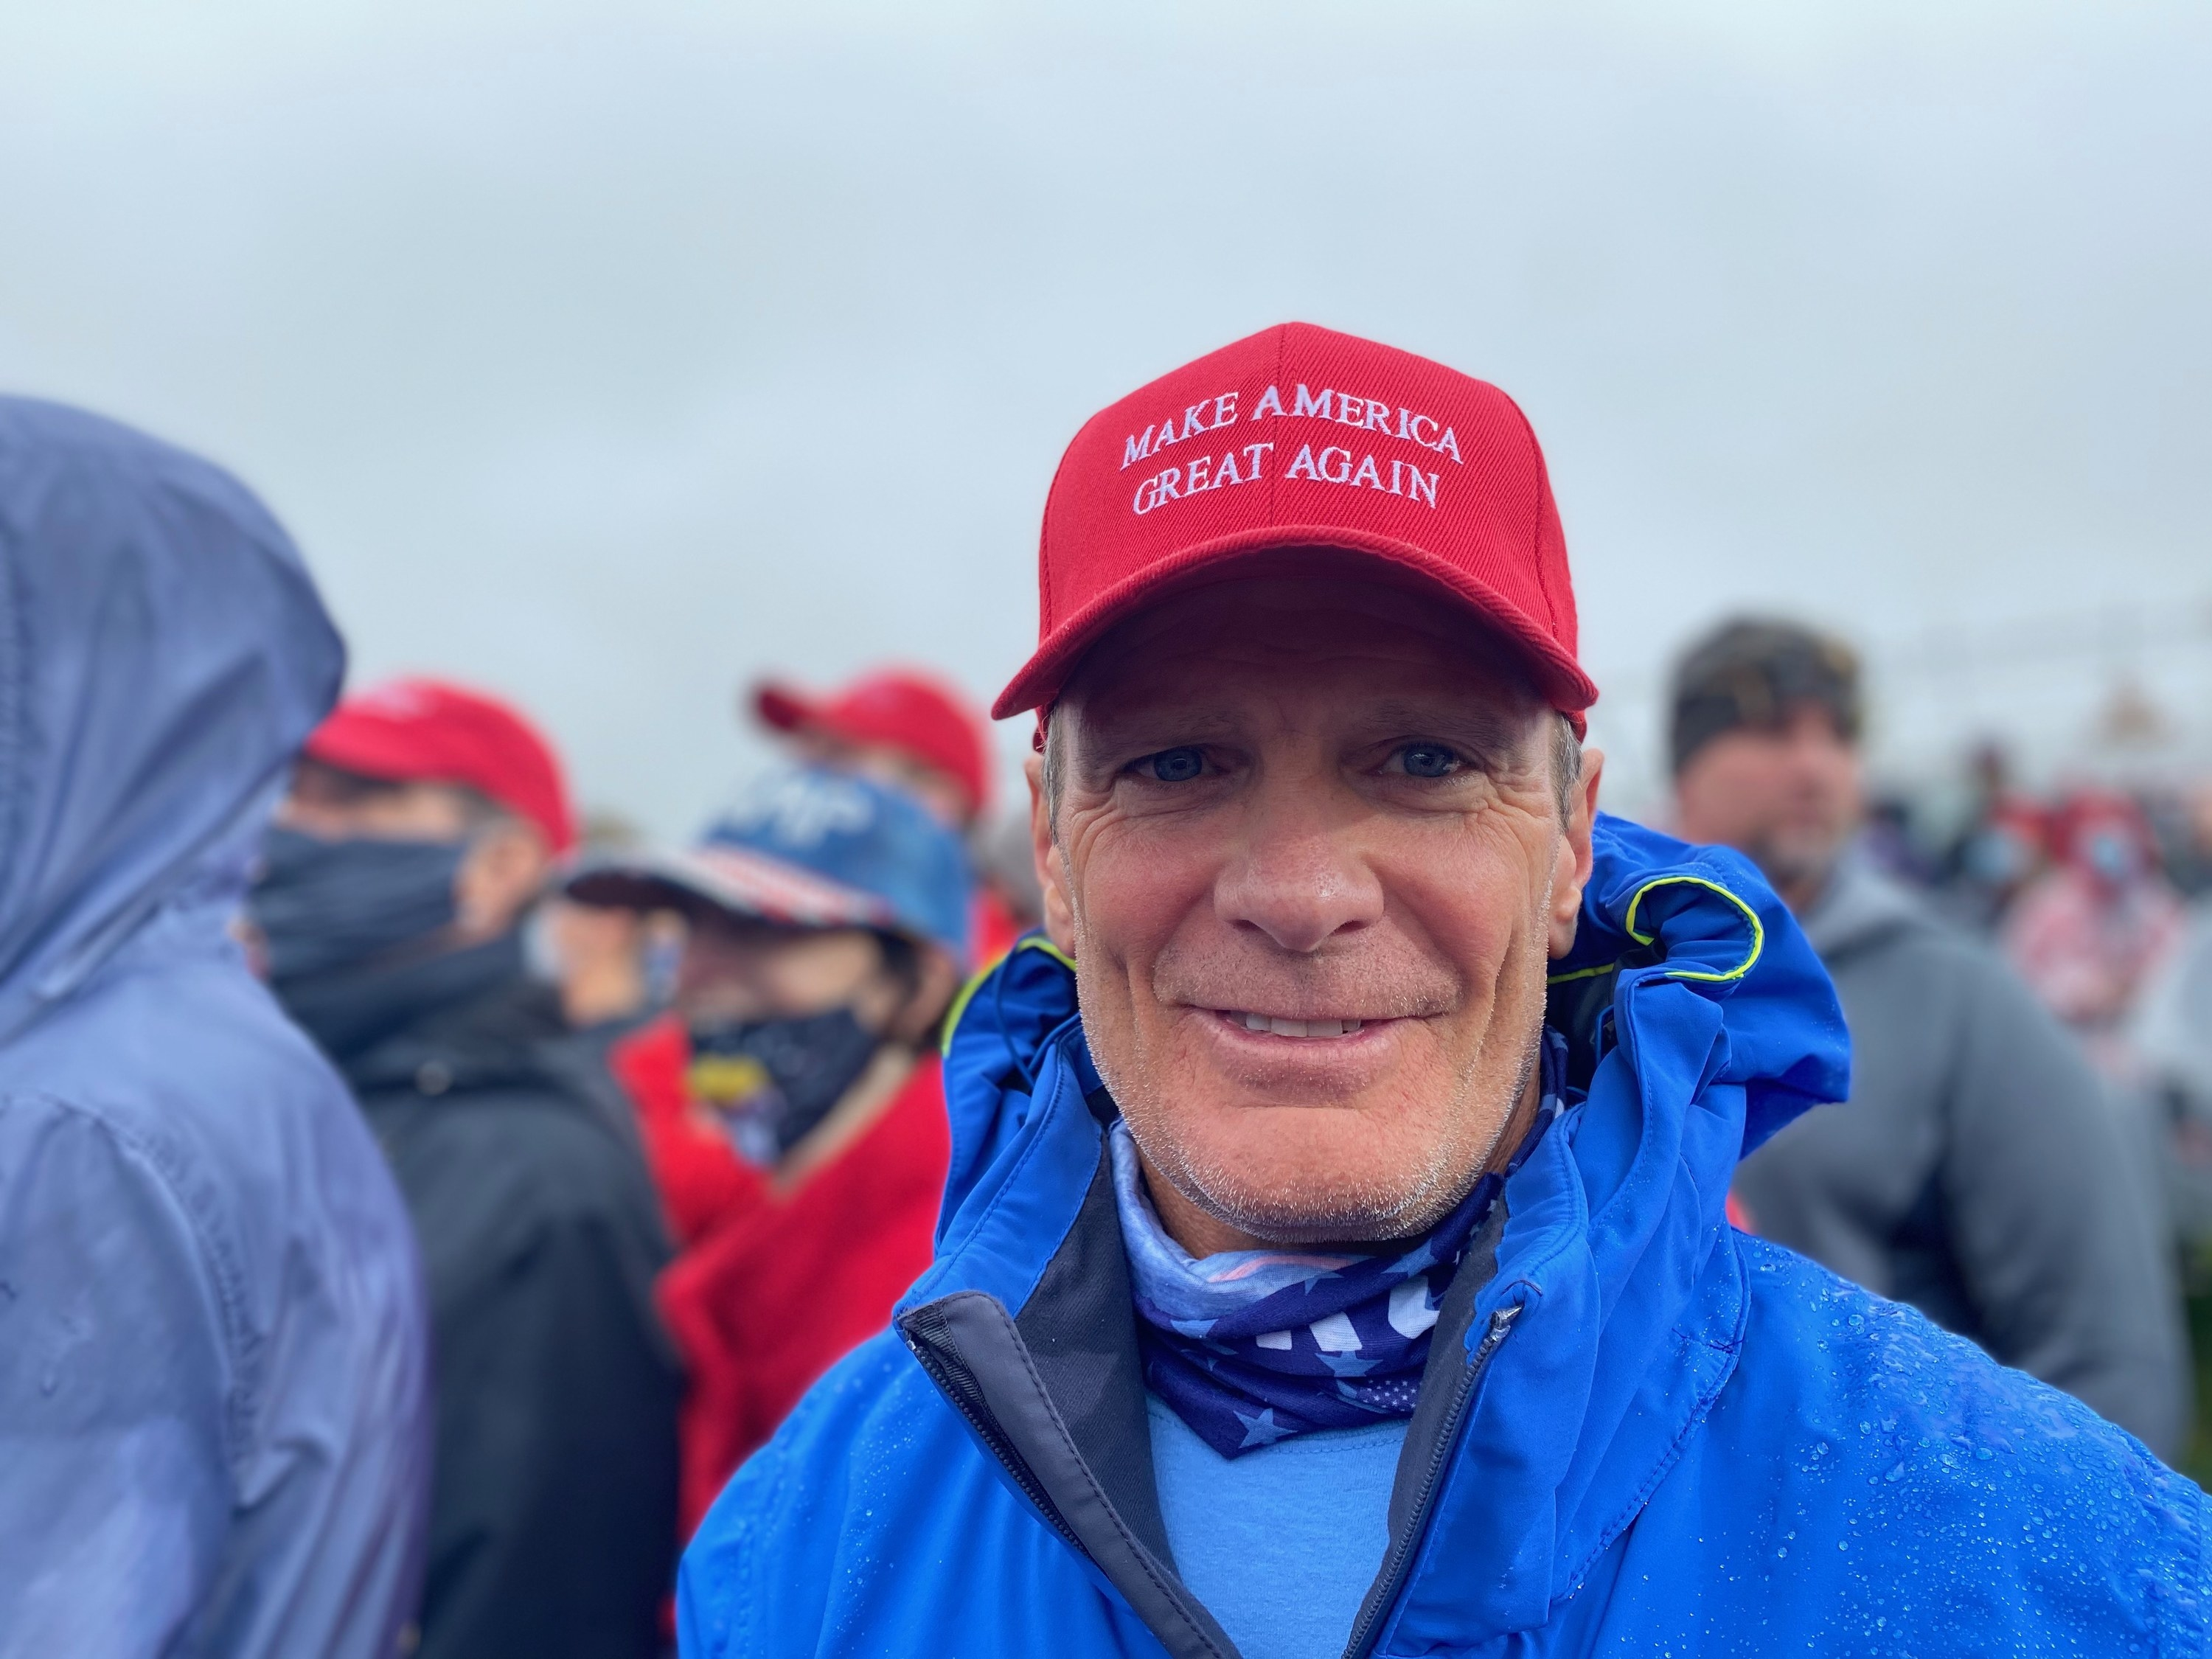 An attendee wearing a Make America Great Again cap at a Pennsylvania Trump rally